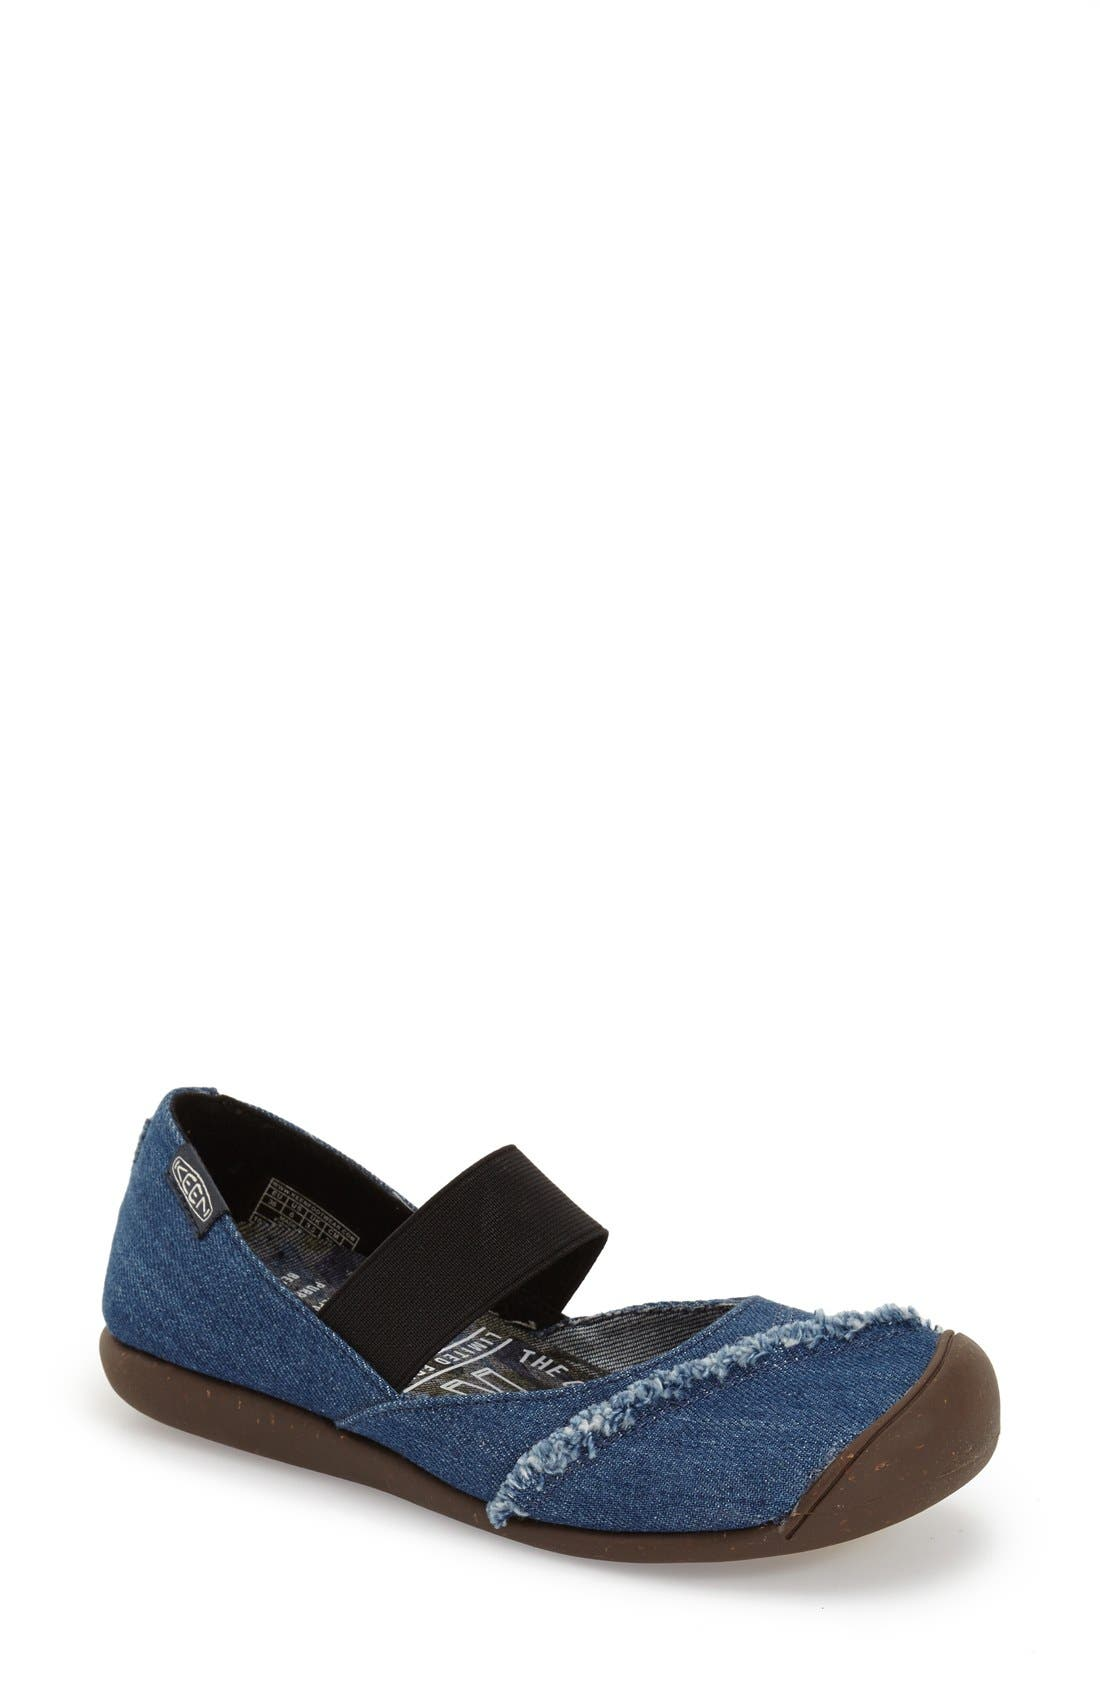 Alternate Image 1 Selected - Keen 'Good Jeans' Mary Jane Flat (Women)